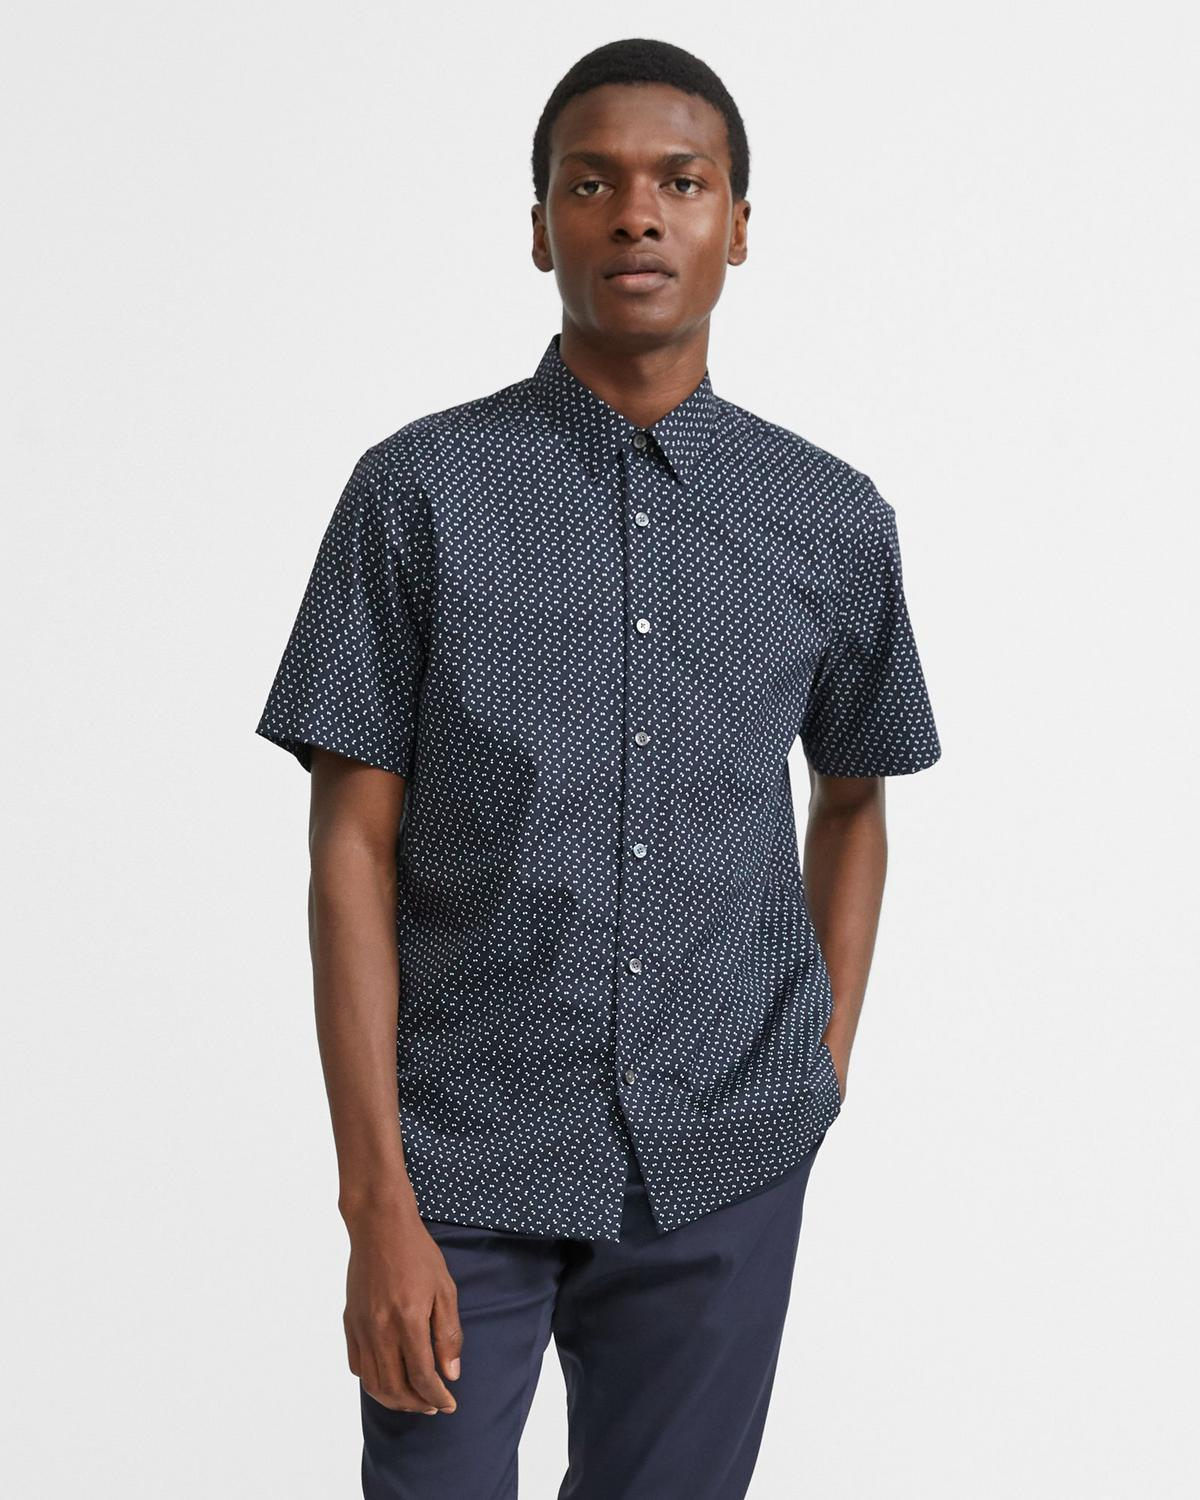 Irving Short-Sleeve Shirt in Printed Stretch Cotton